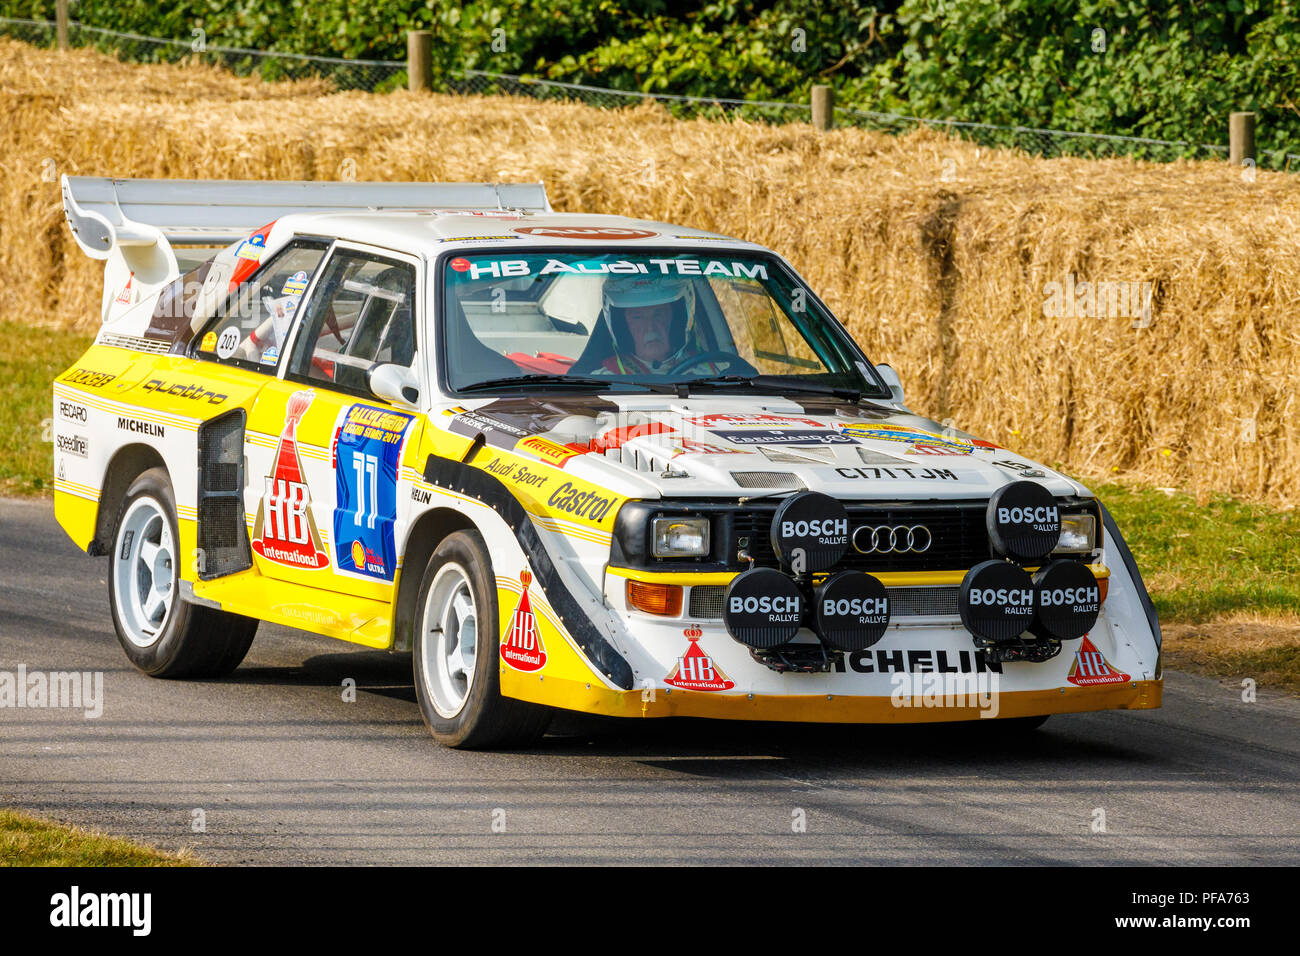 1985 audi sport quattro s1 e2 group b rally car with. Black Bedroom Furniture Sets. Home Design Ideas